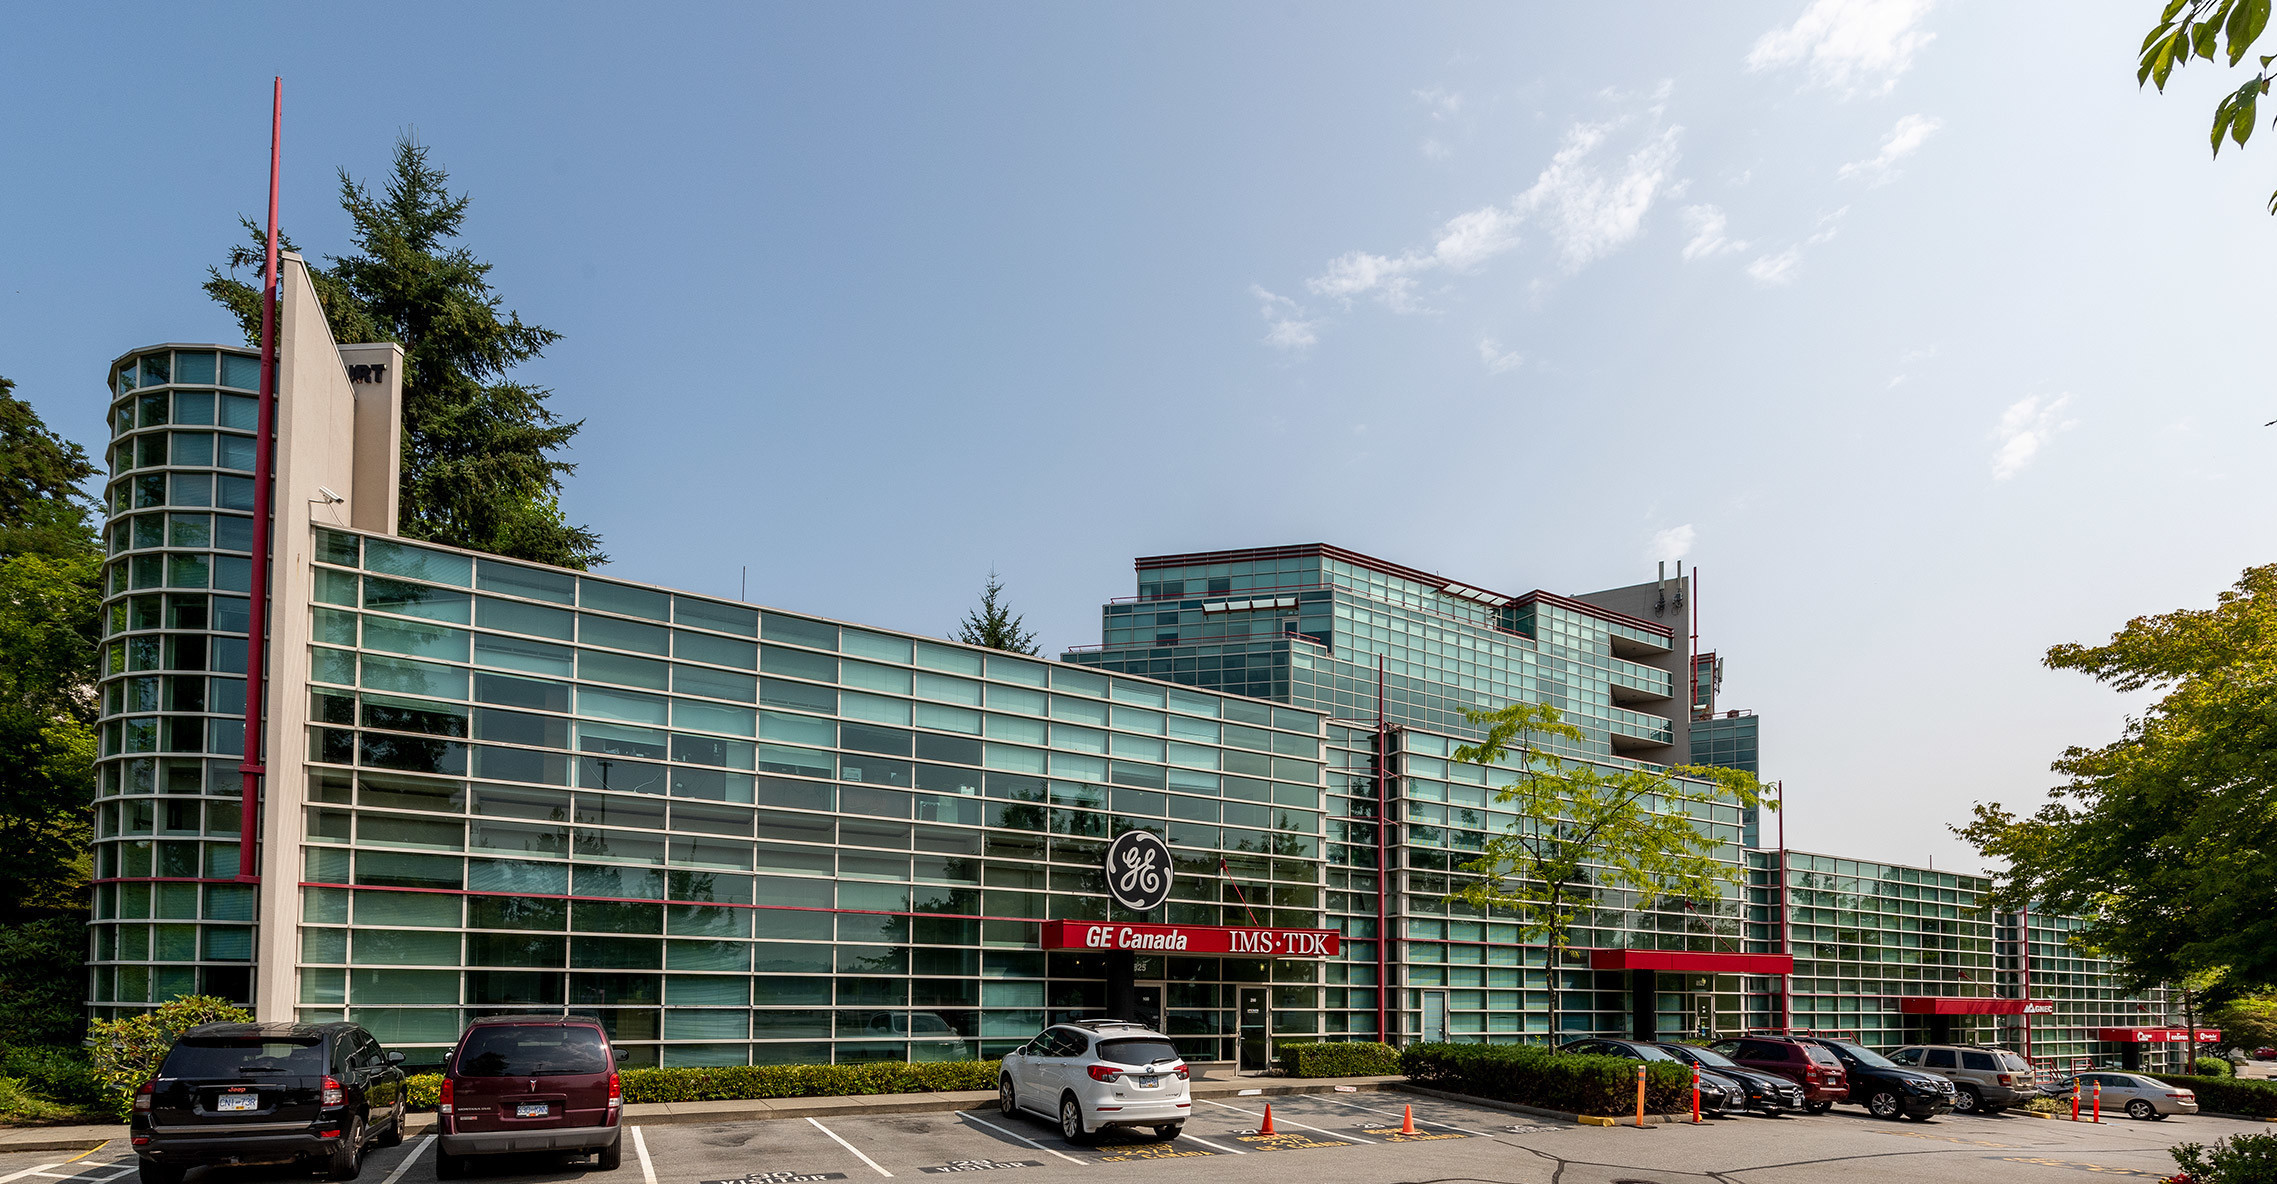 Production Court in Burnaby, BC